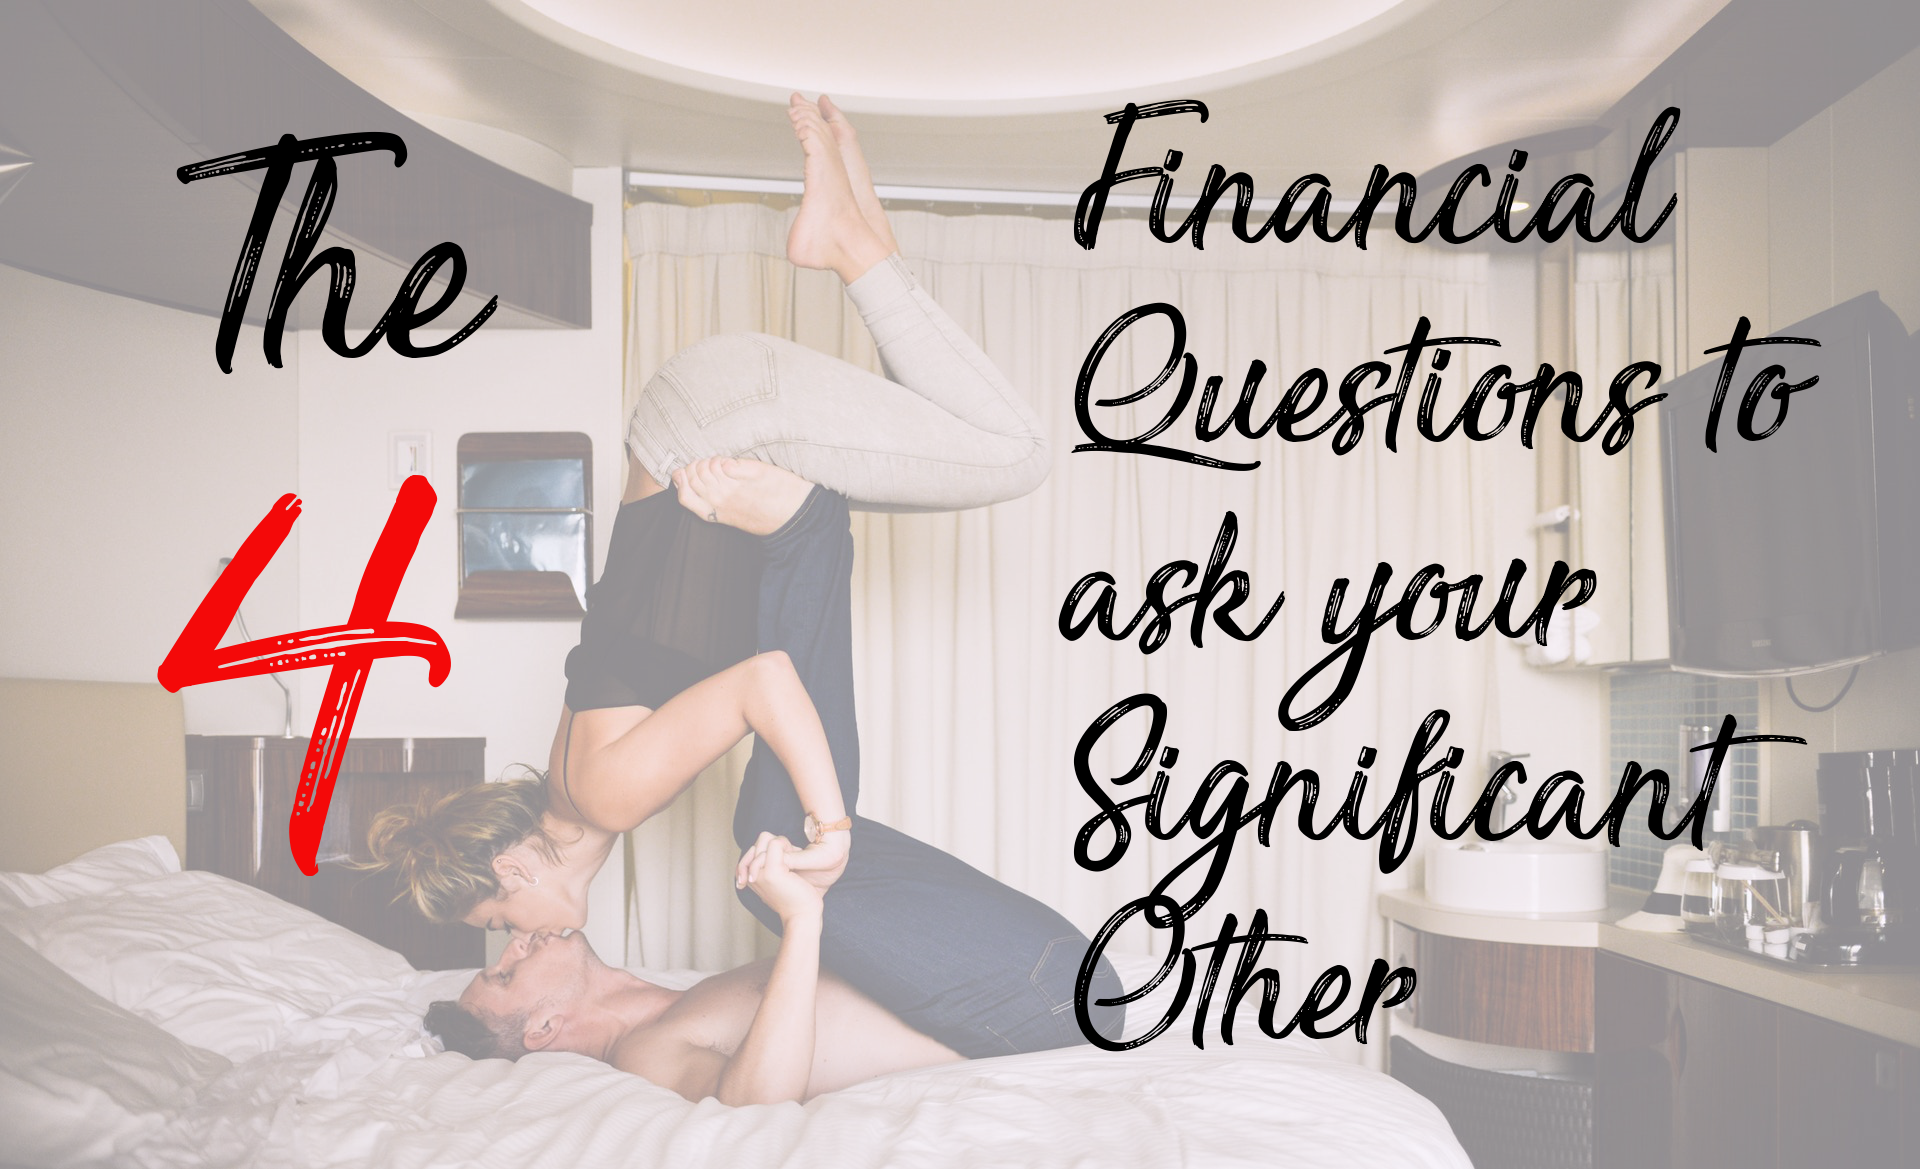 4 financial questions to ask your significant other